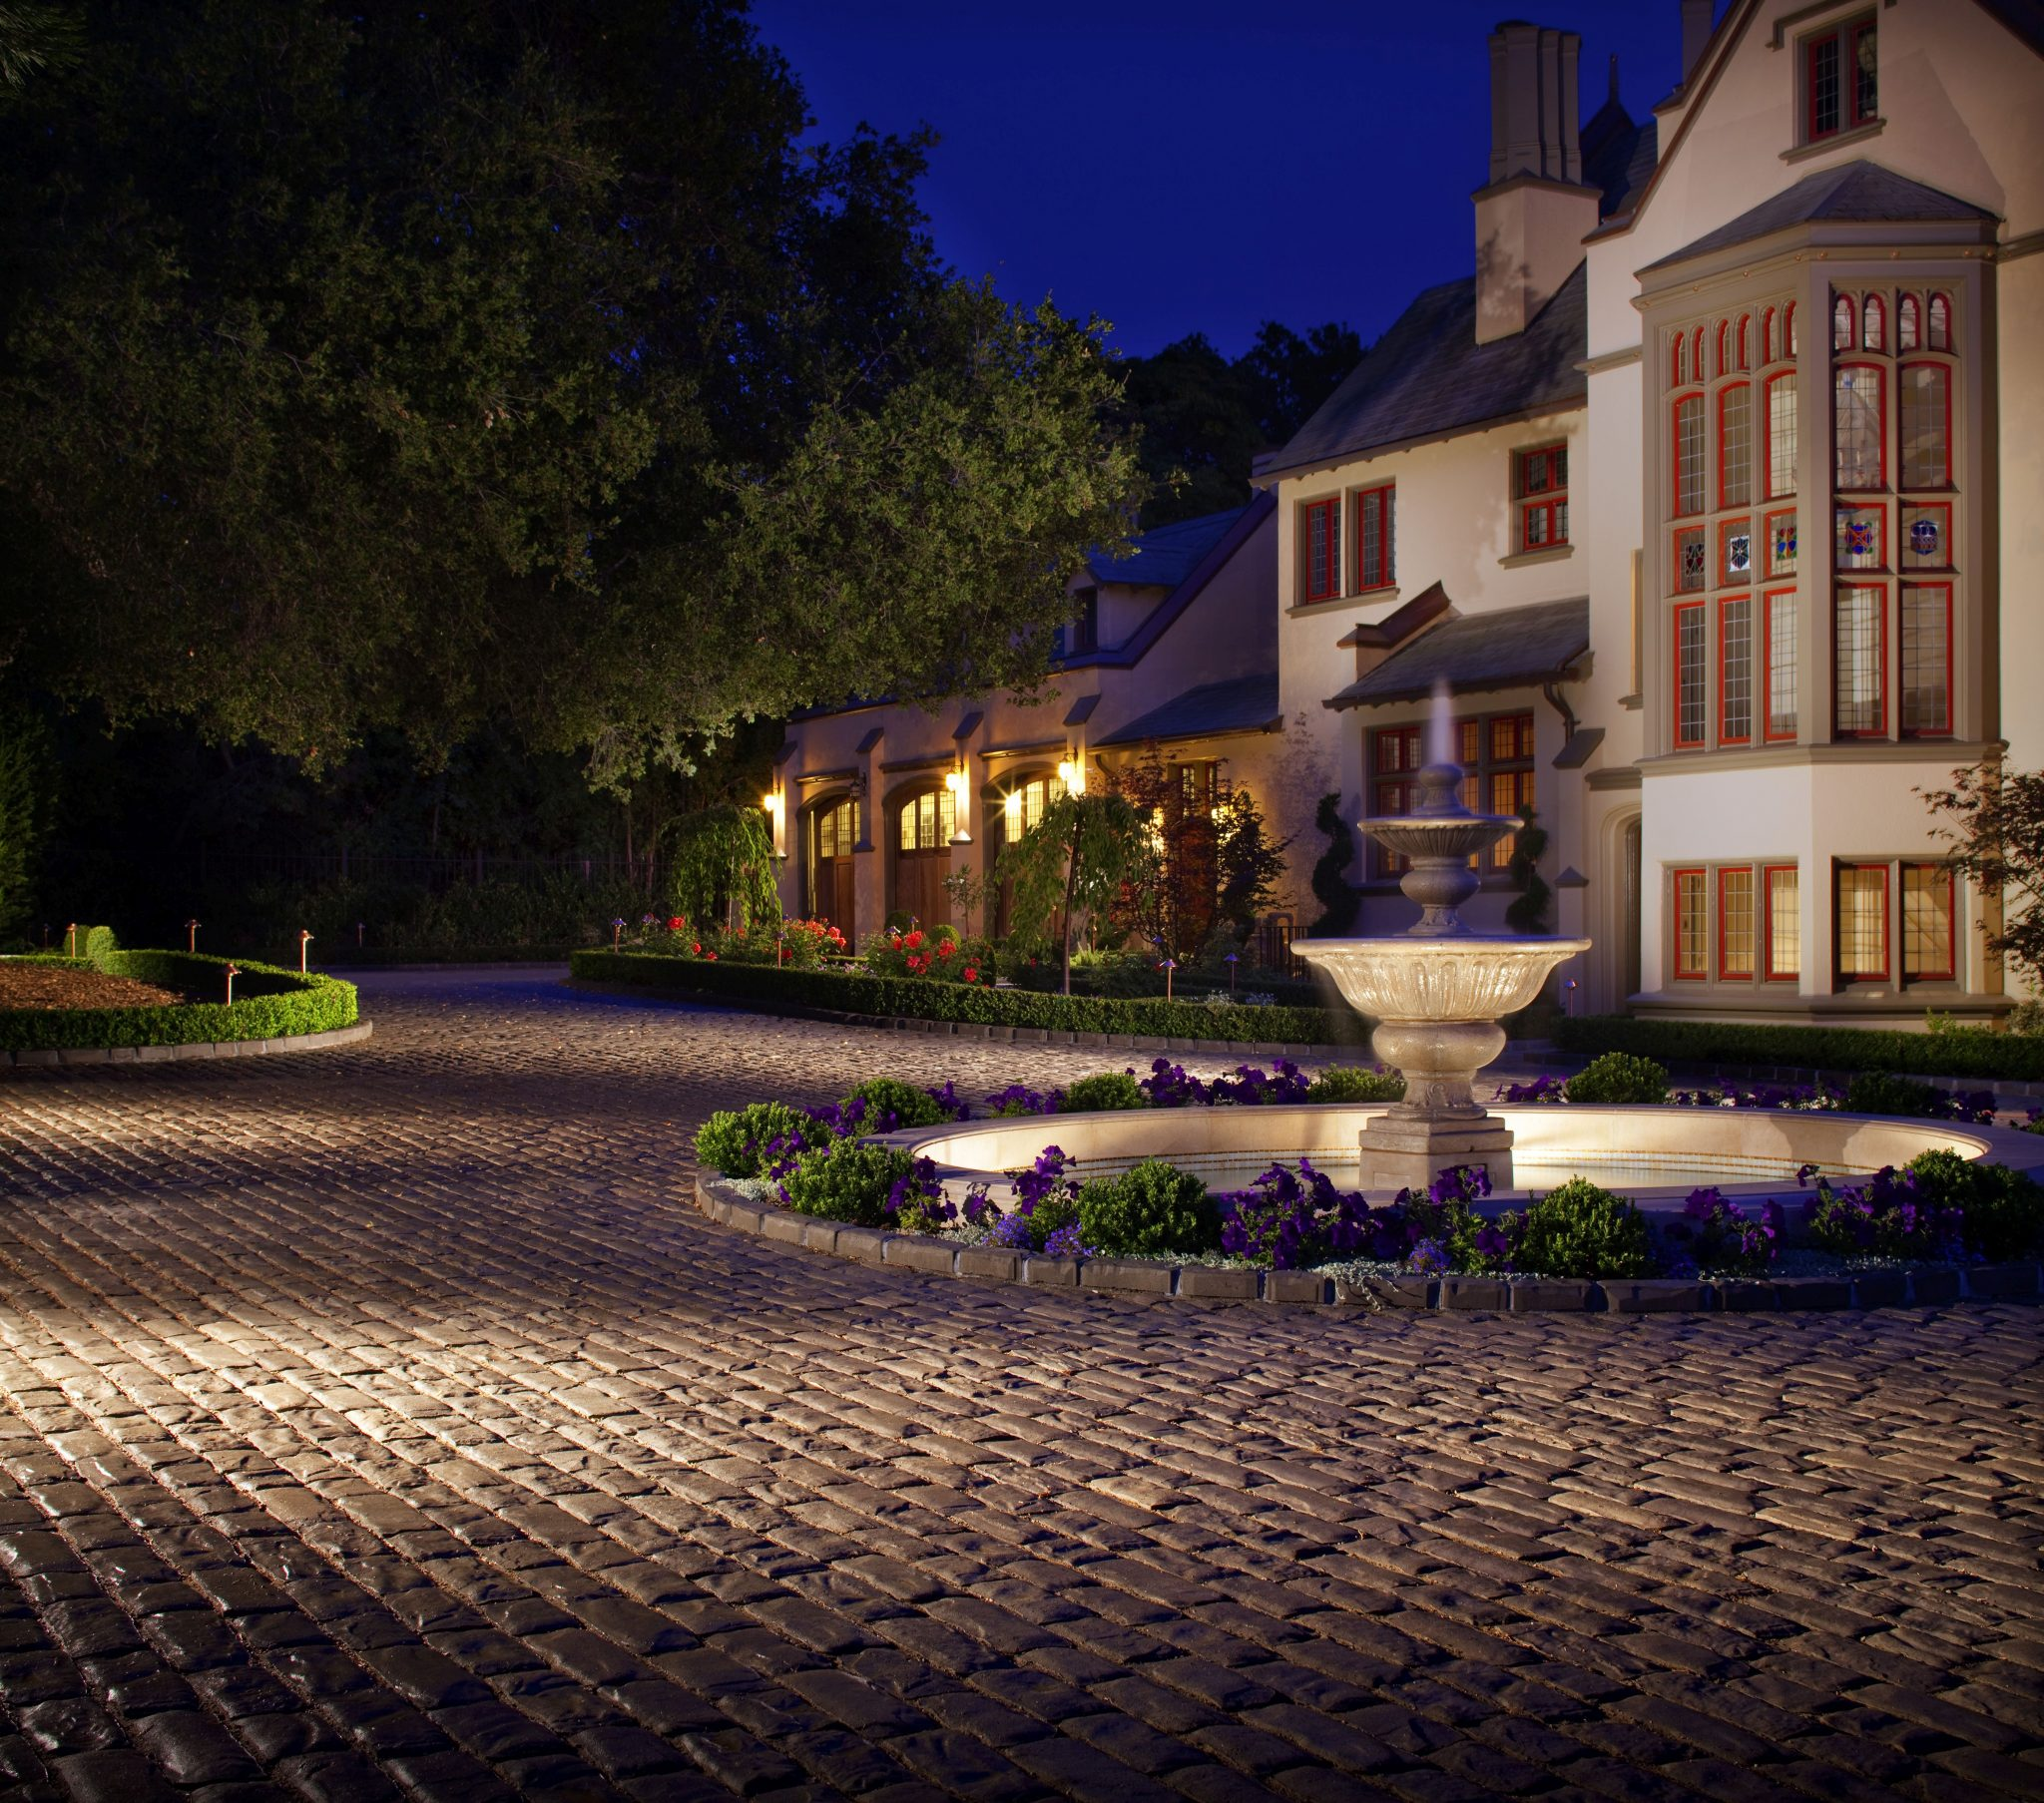 Driveway Night Lights: Increase Your Home Security With Landscape Lighting (PRO